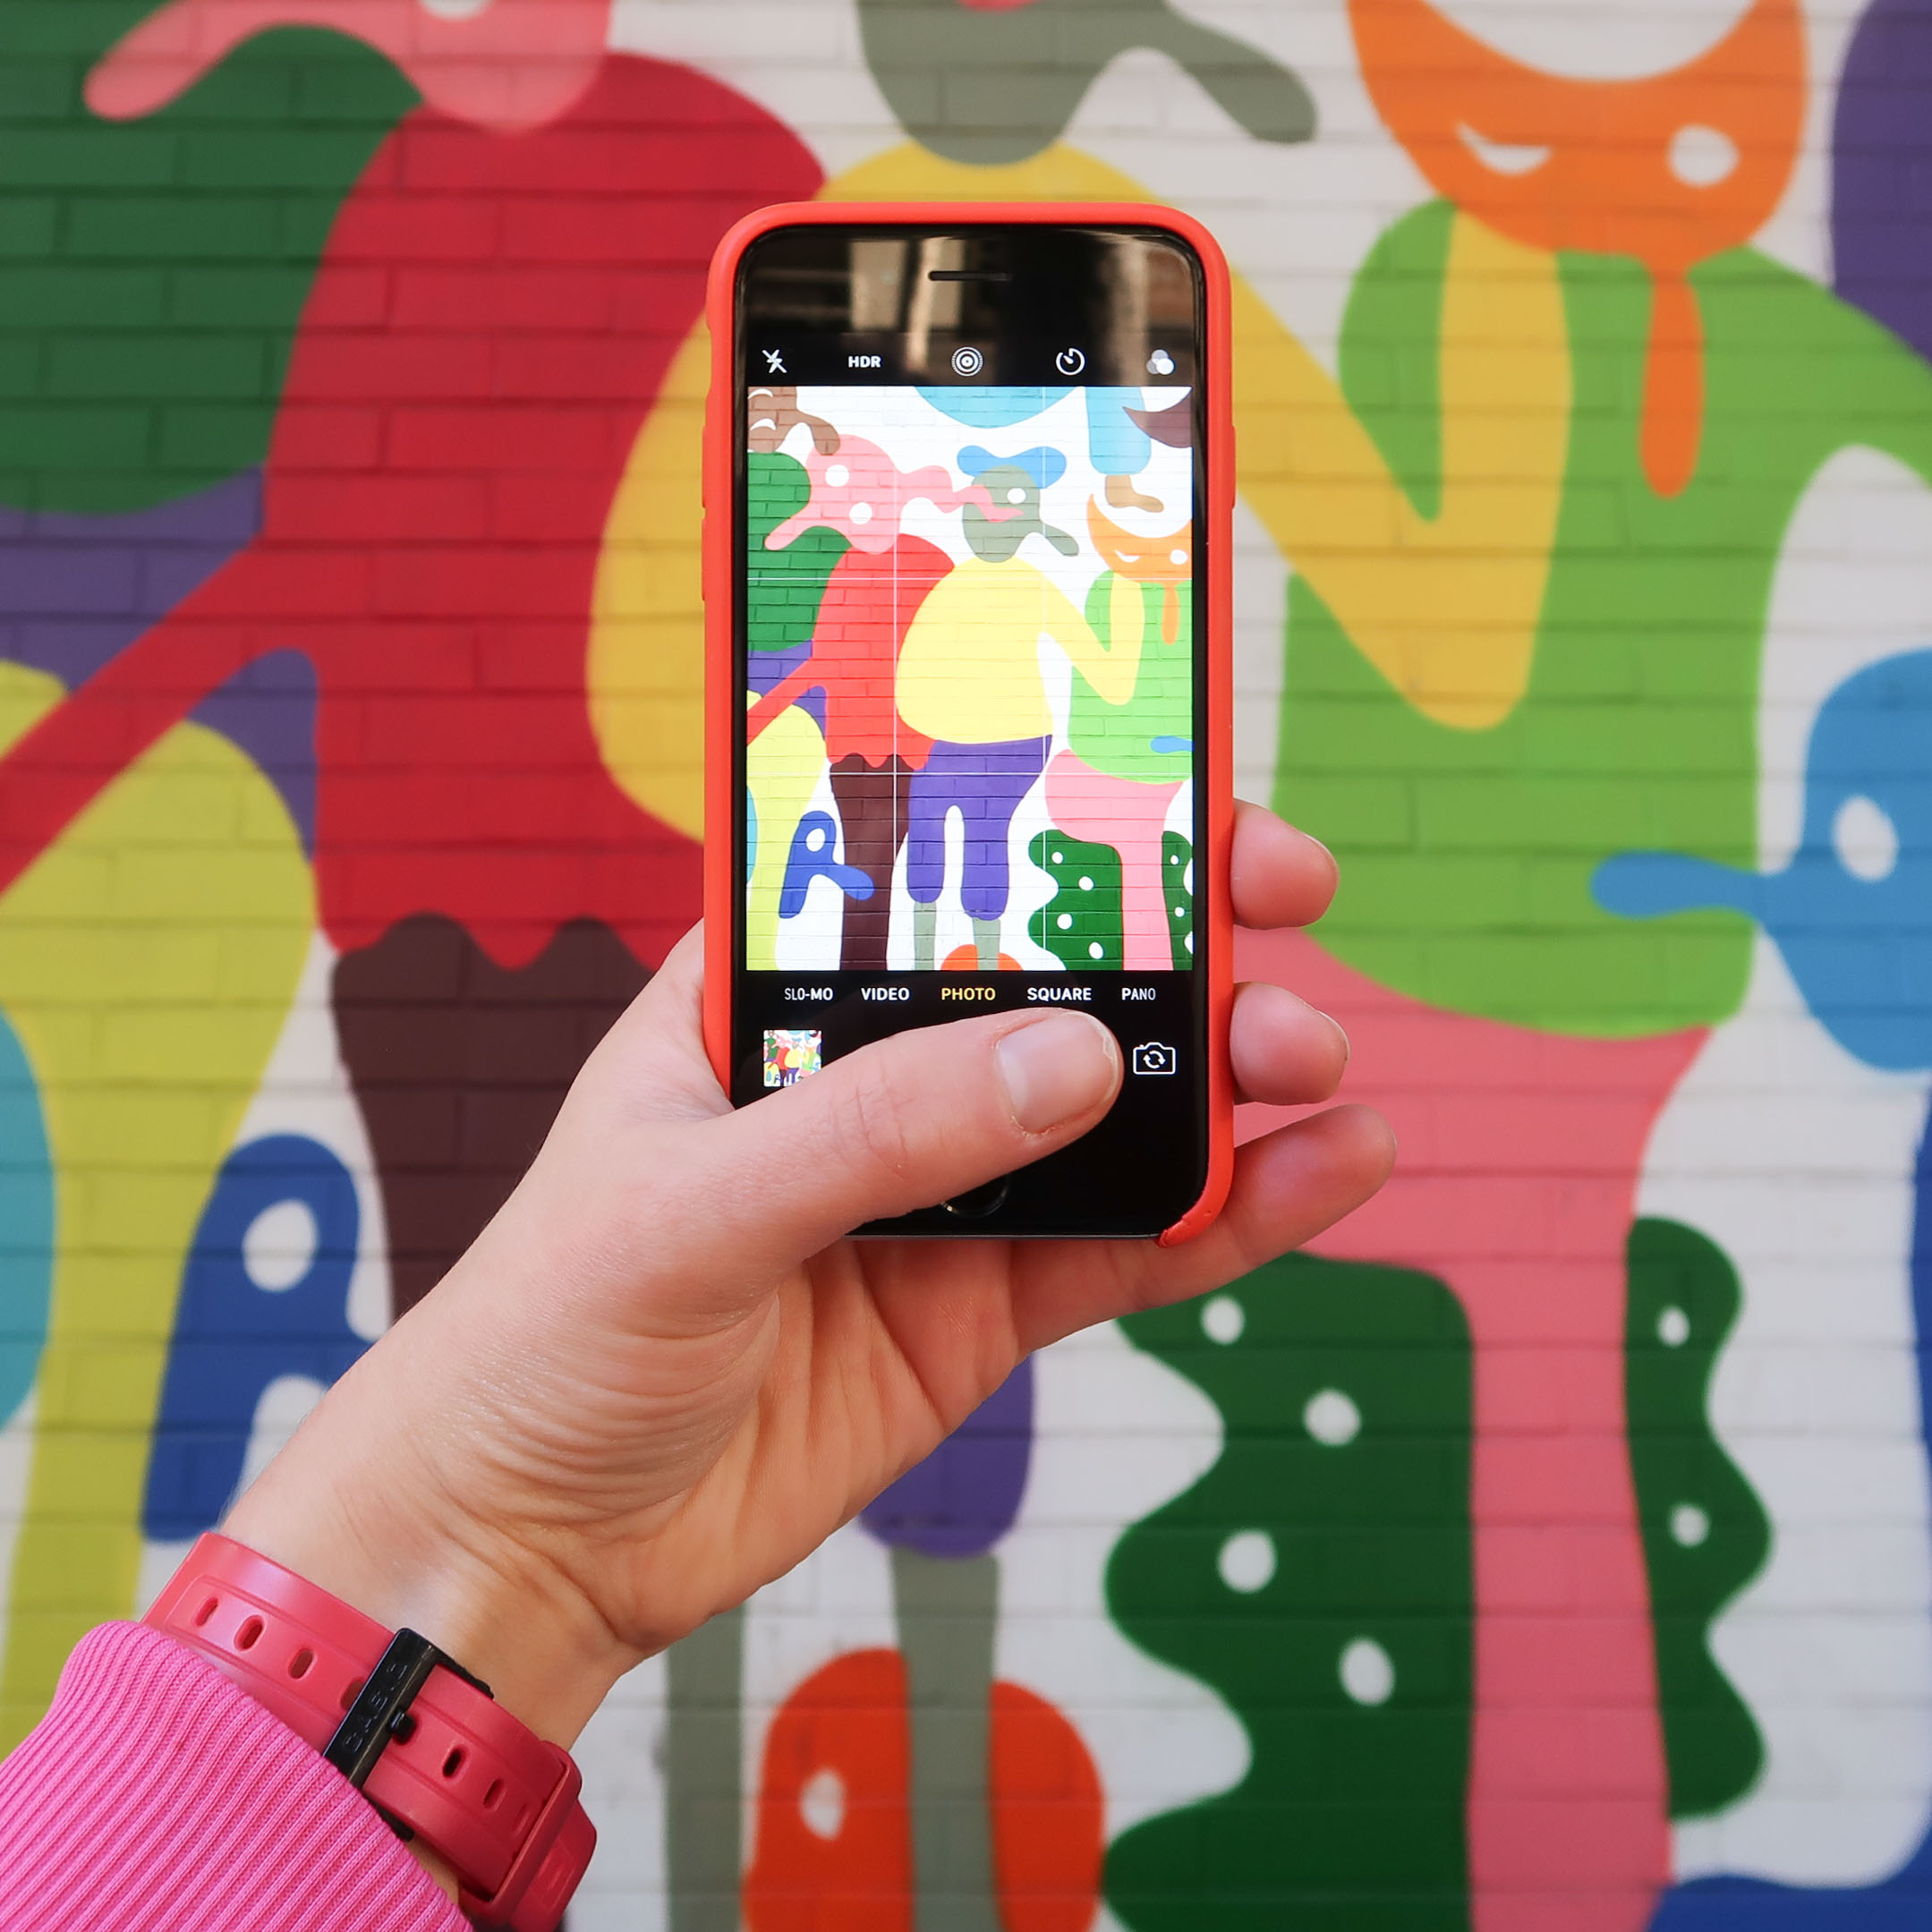 Snapping the most colourful murals in Downtown LA